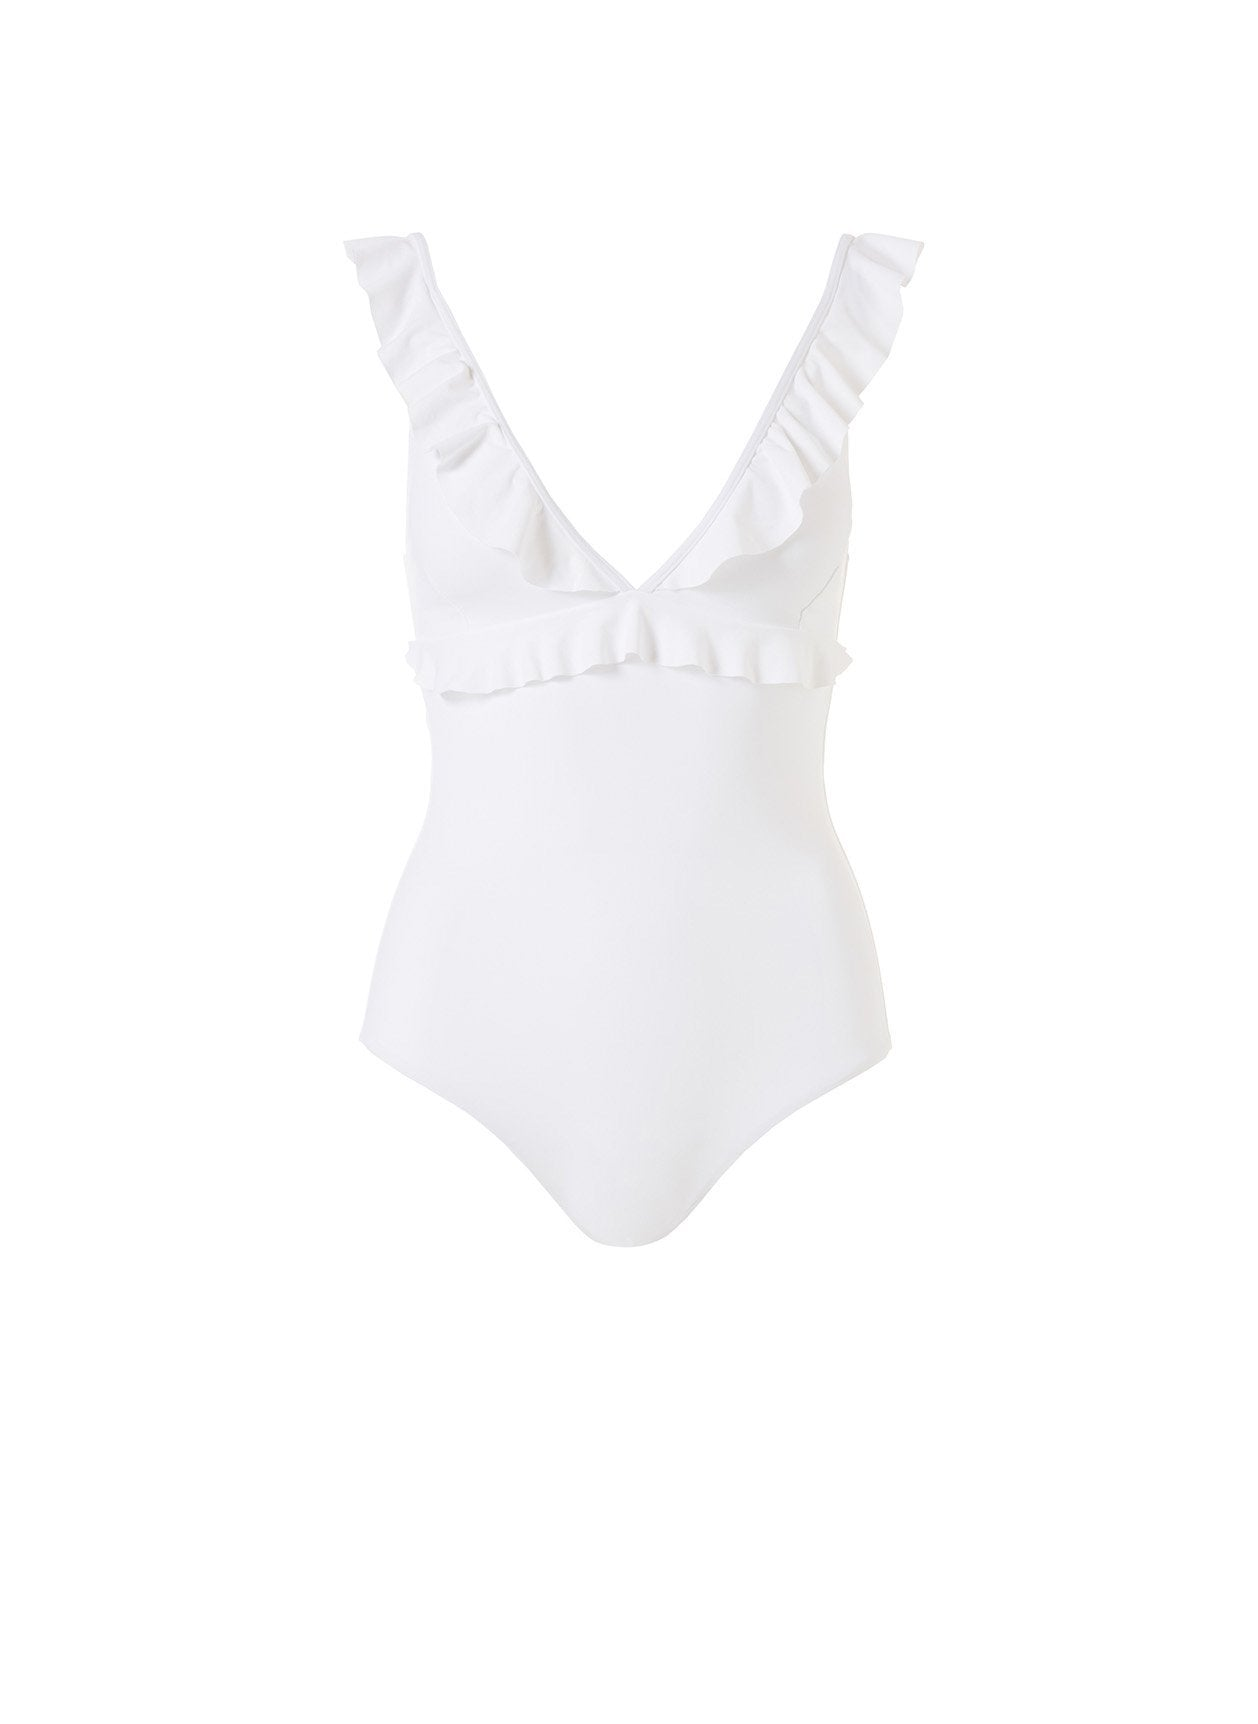 Los Angles White Frill Over The Shoulder One Piece 2020